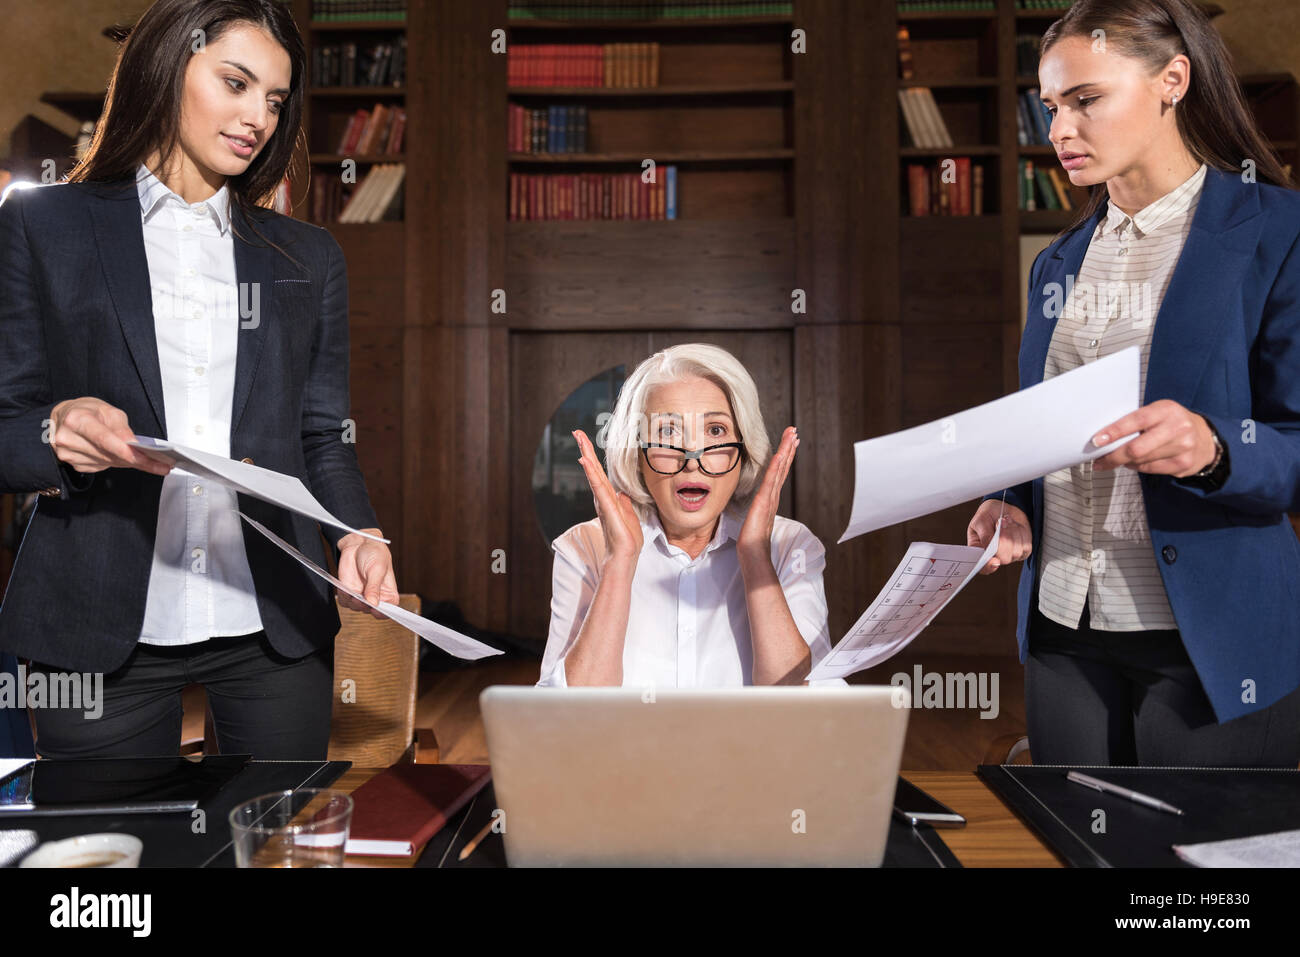 Exhausted boss and her female colleagues posing in an office - Stock Image